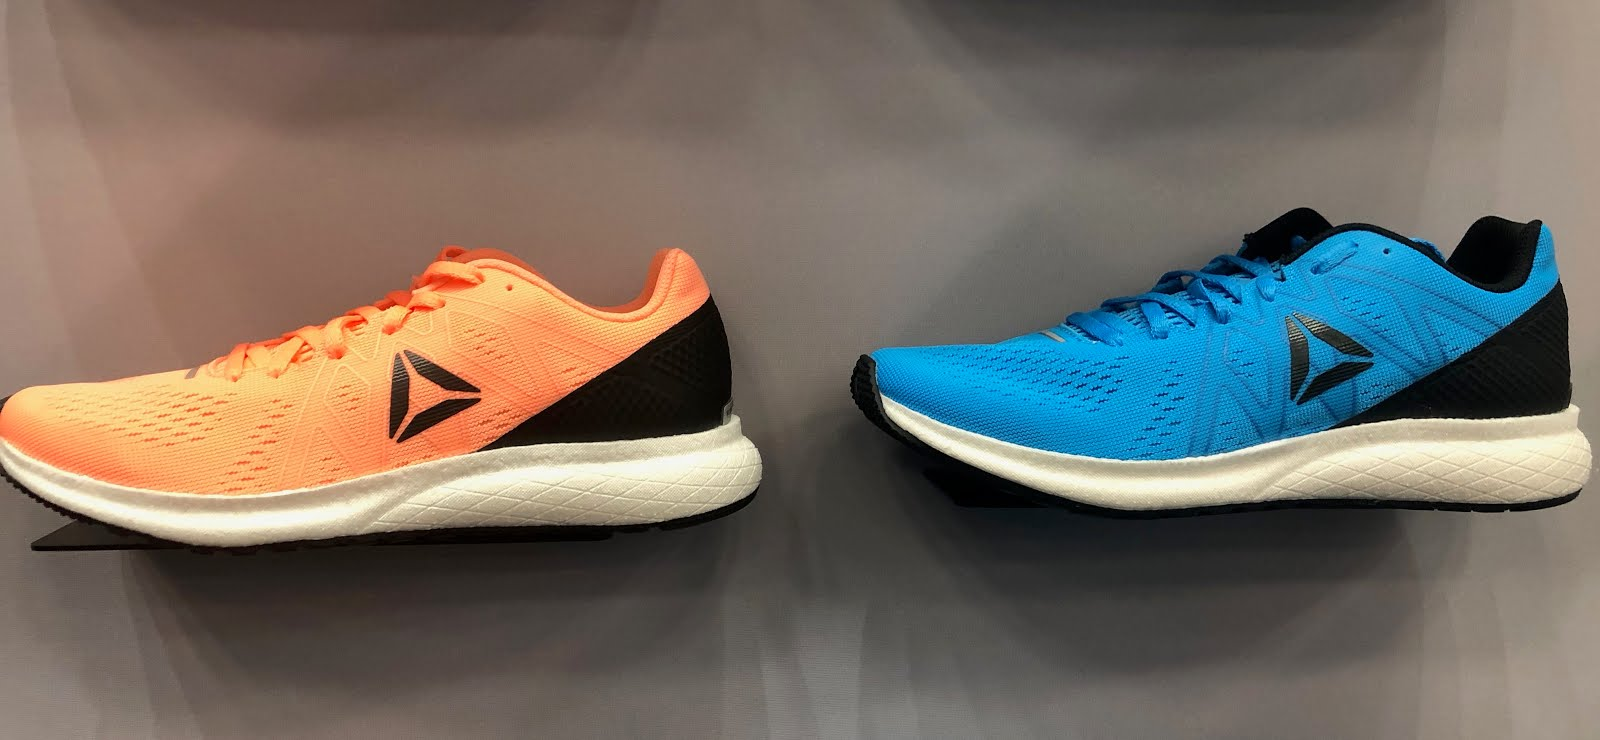 Road Trail Run  Reebok 2019 Previews  New Forever Floatride Energy ... af8c02a44